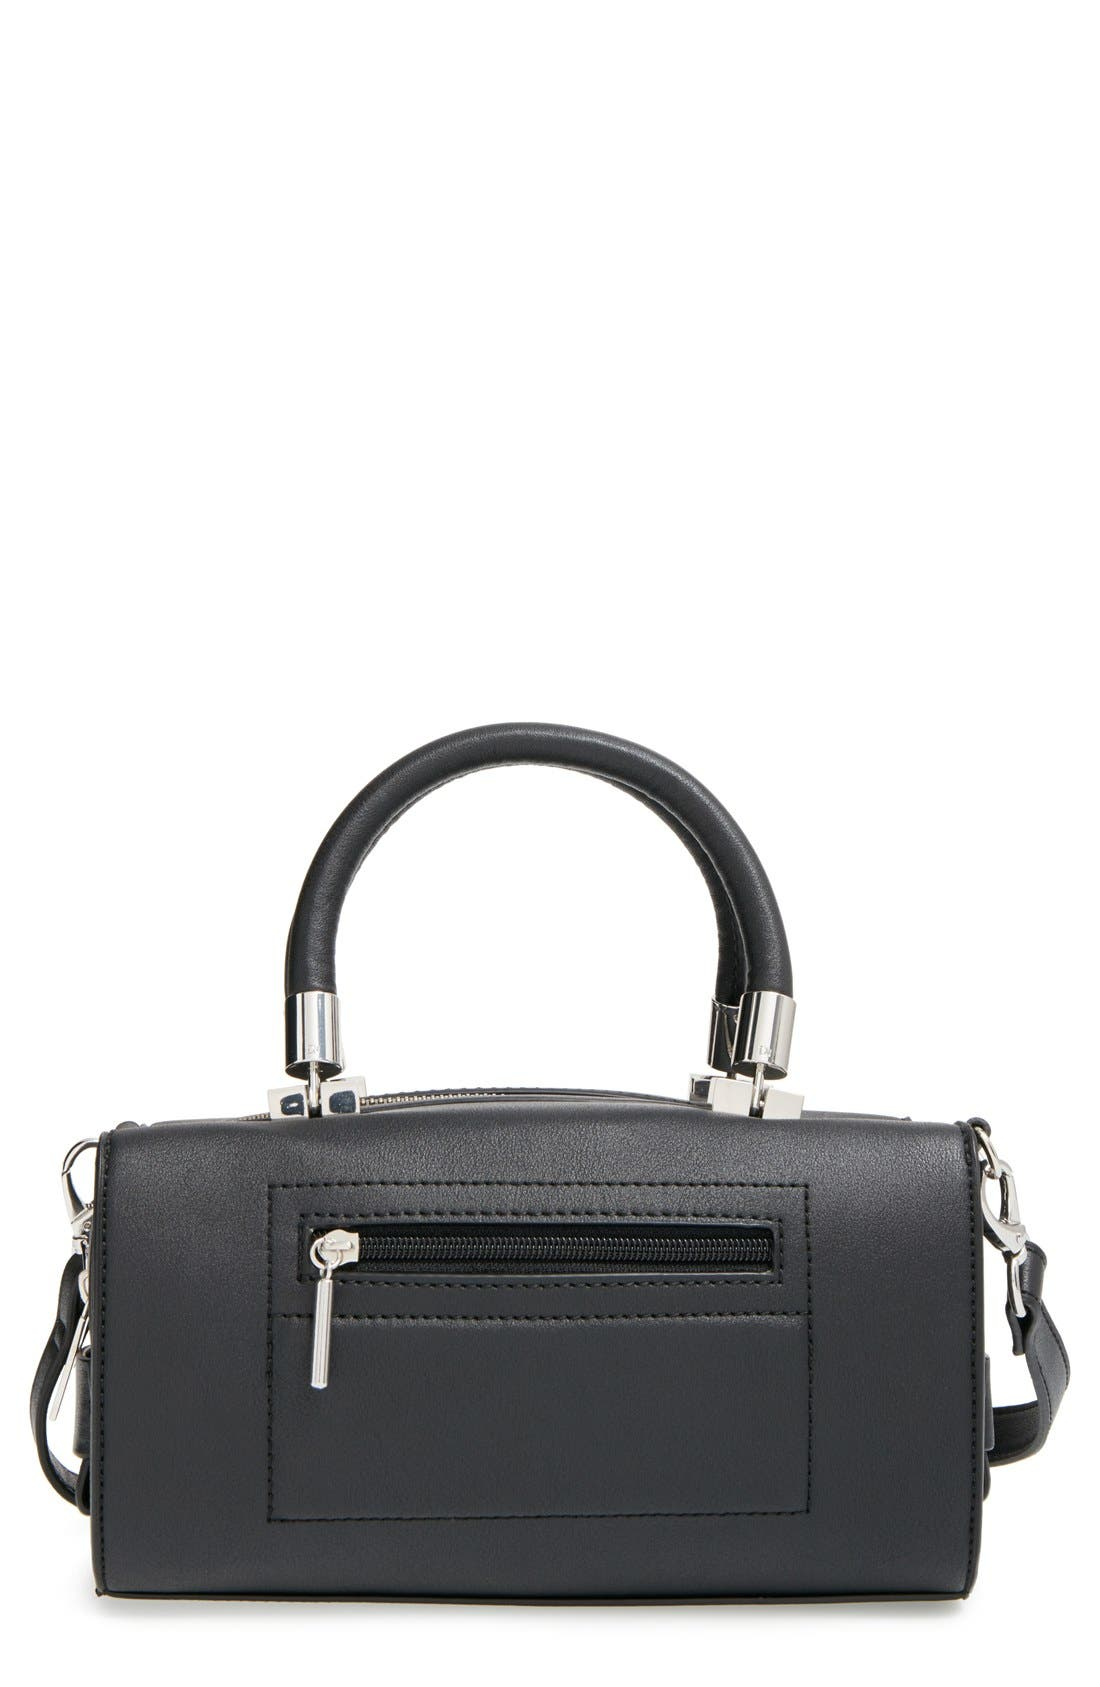 'Whitney' Faux Leather Crossbody Bag, Main, color, 001